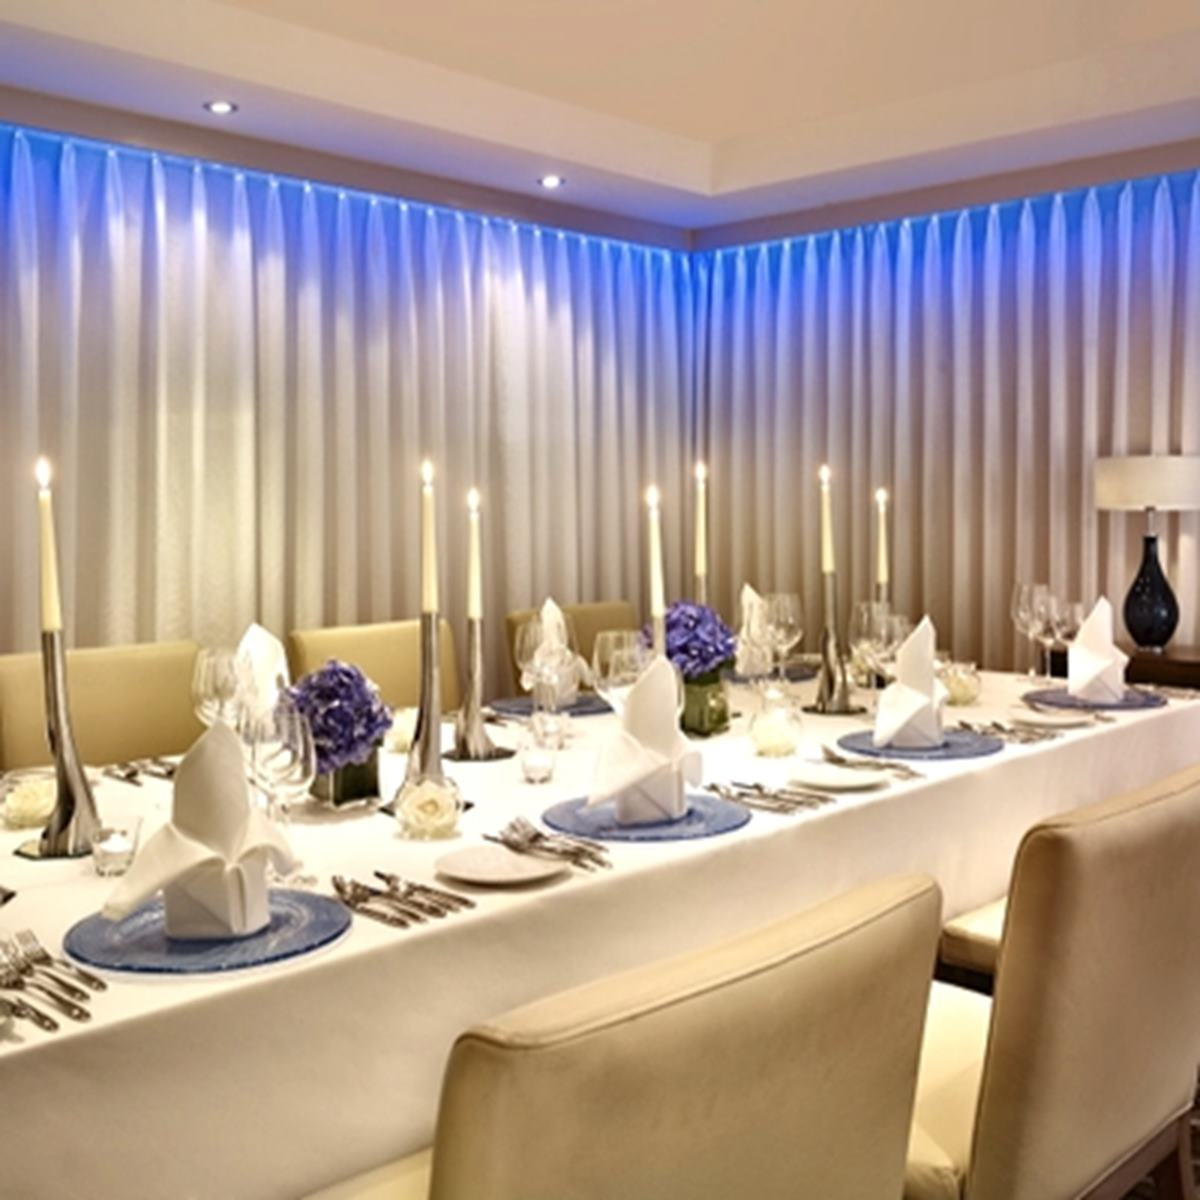 Hotel Dining Room: The Chelsea Harbour Hotel